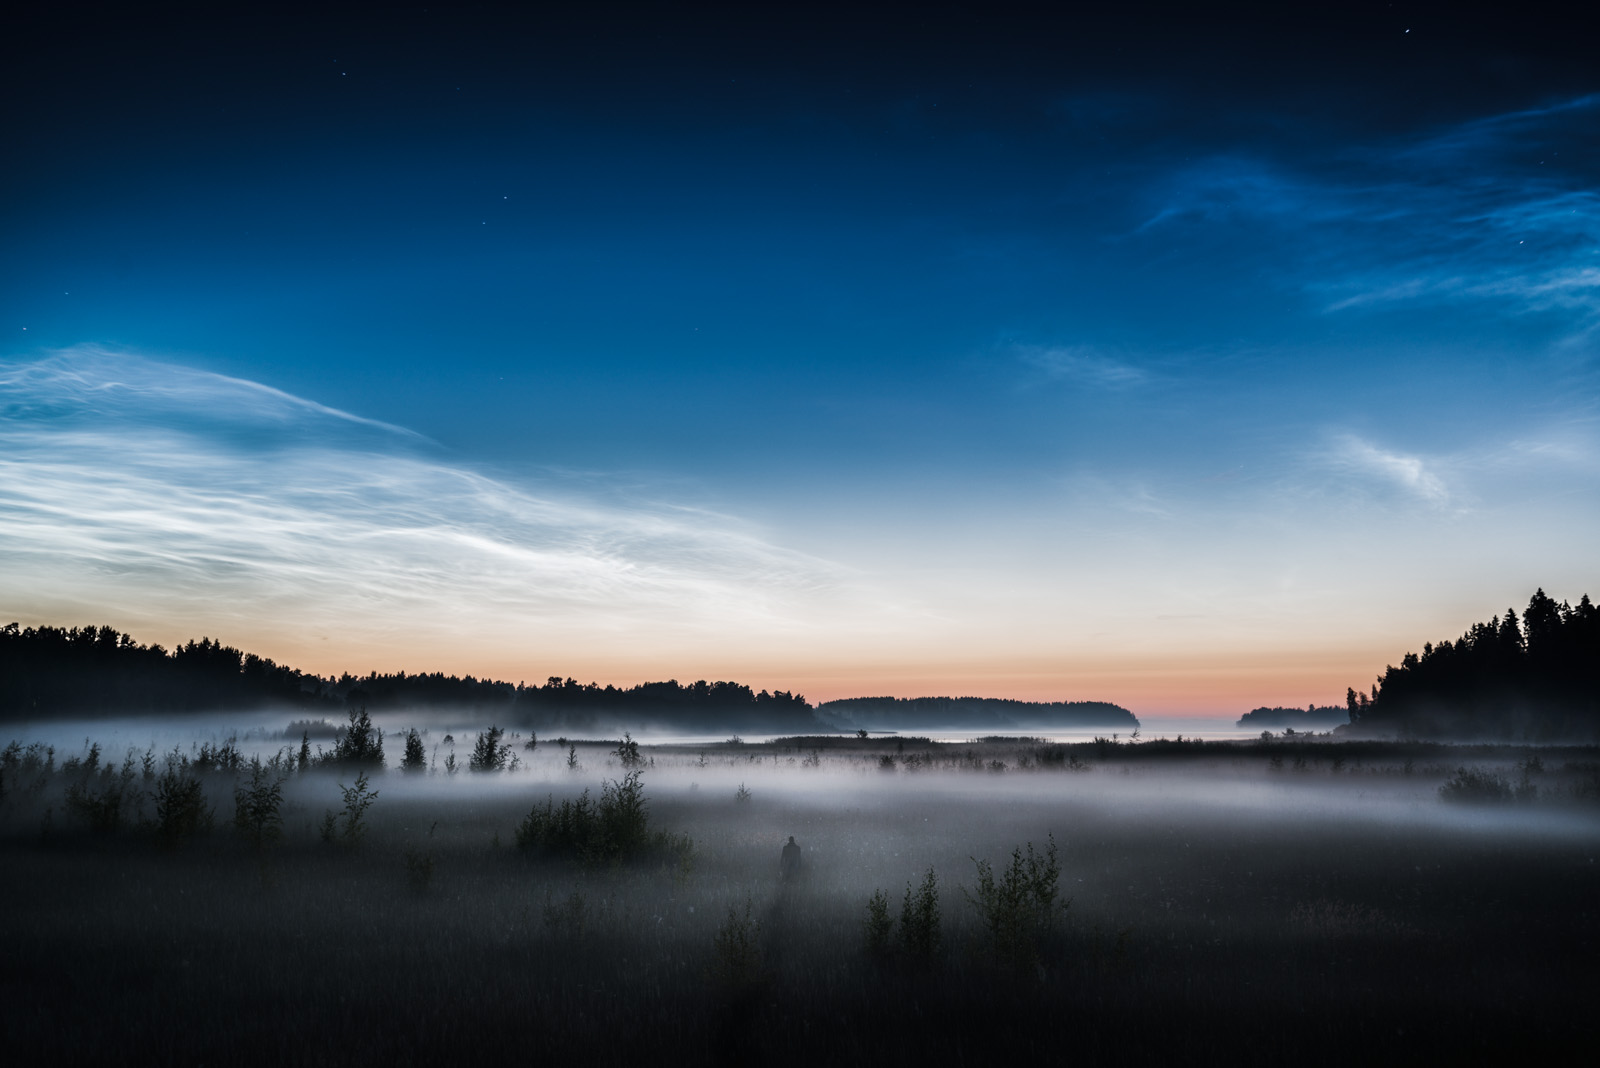 Noctilucent Night II by MikkoLagerstedt